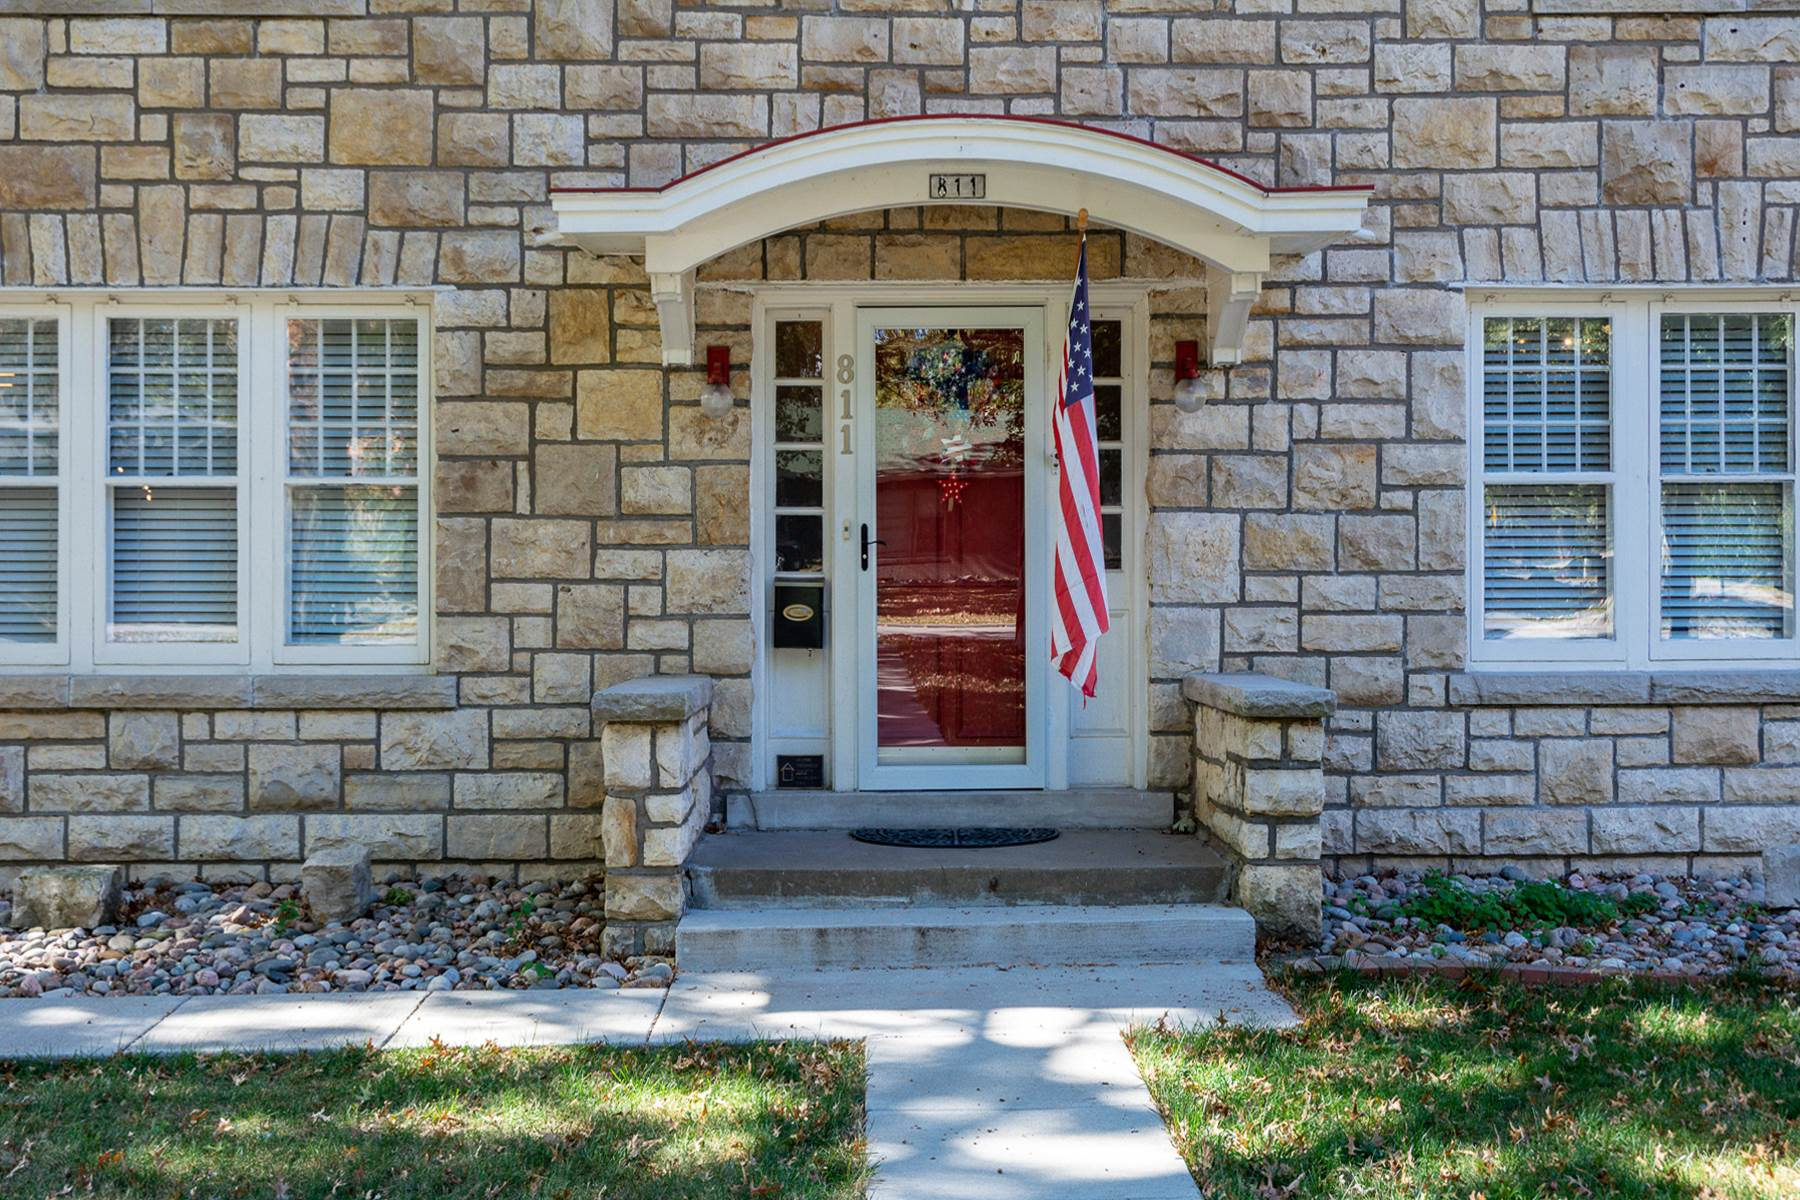 811 South Chestnut Street, Olathe, KS 66061